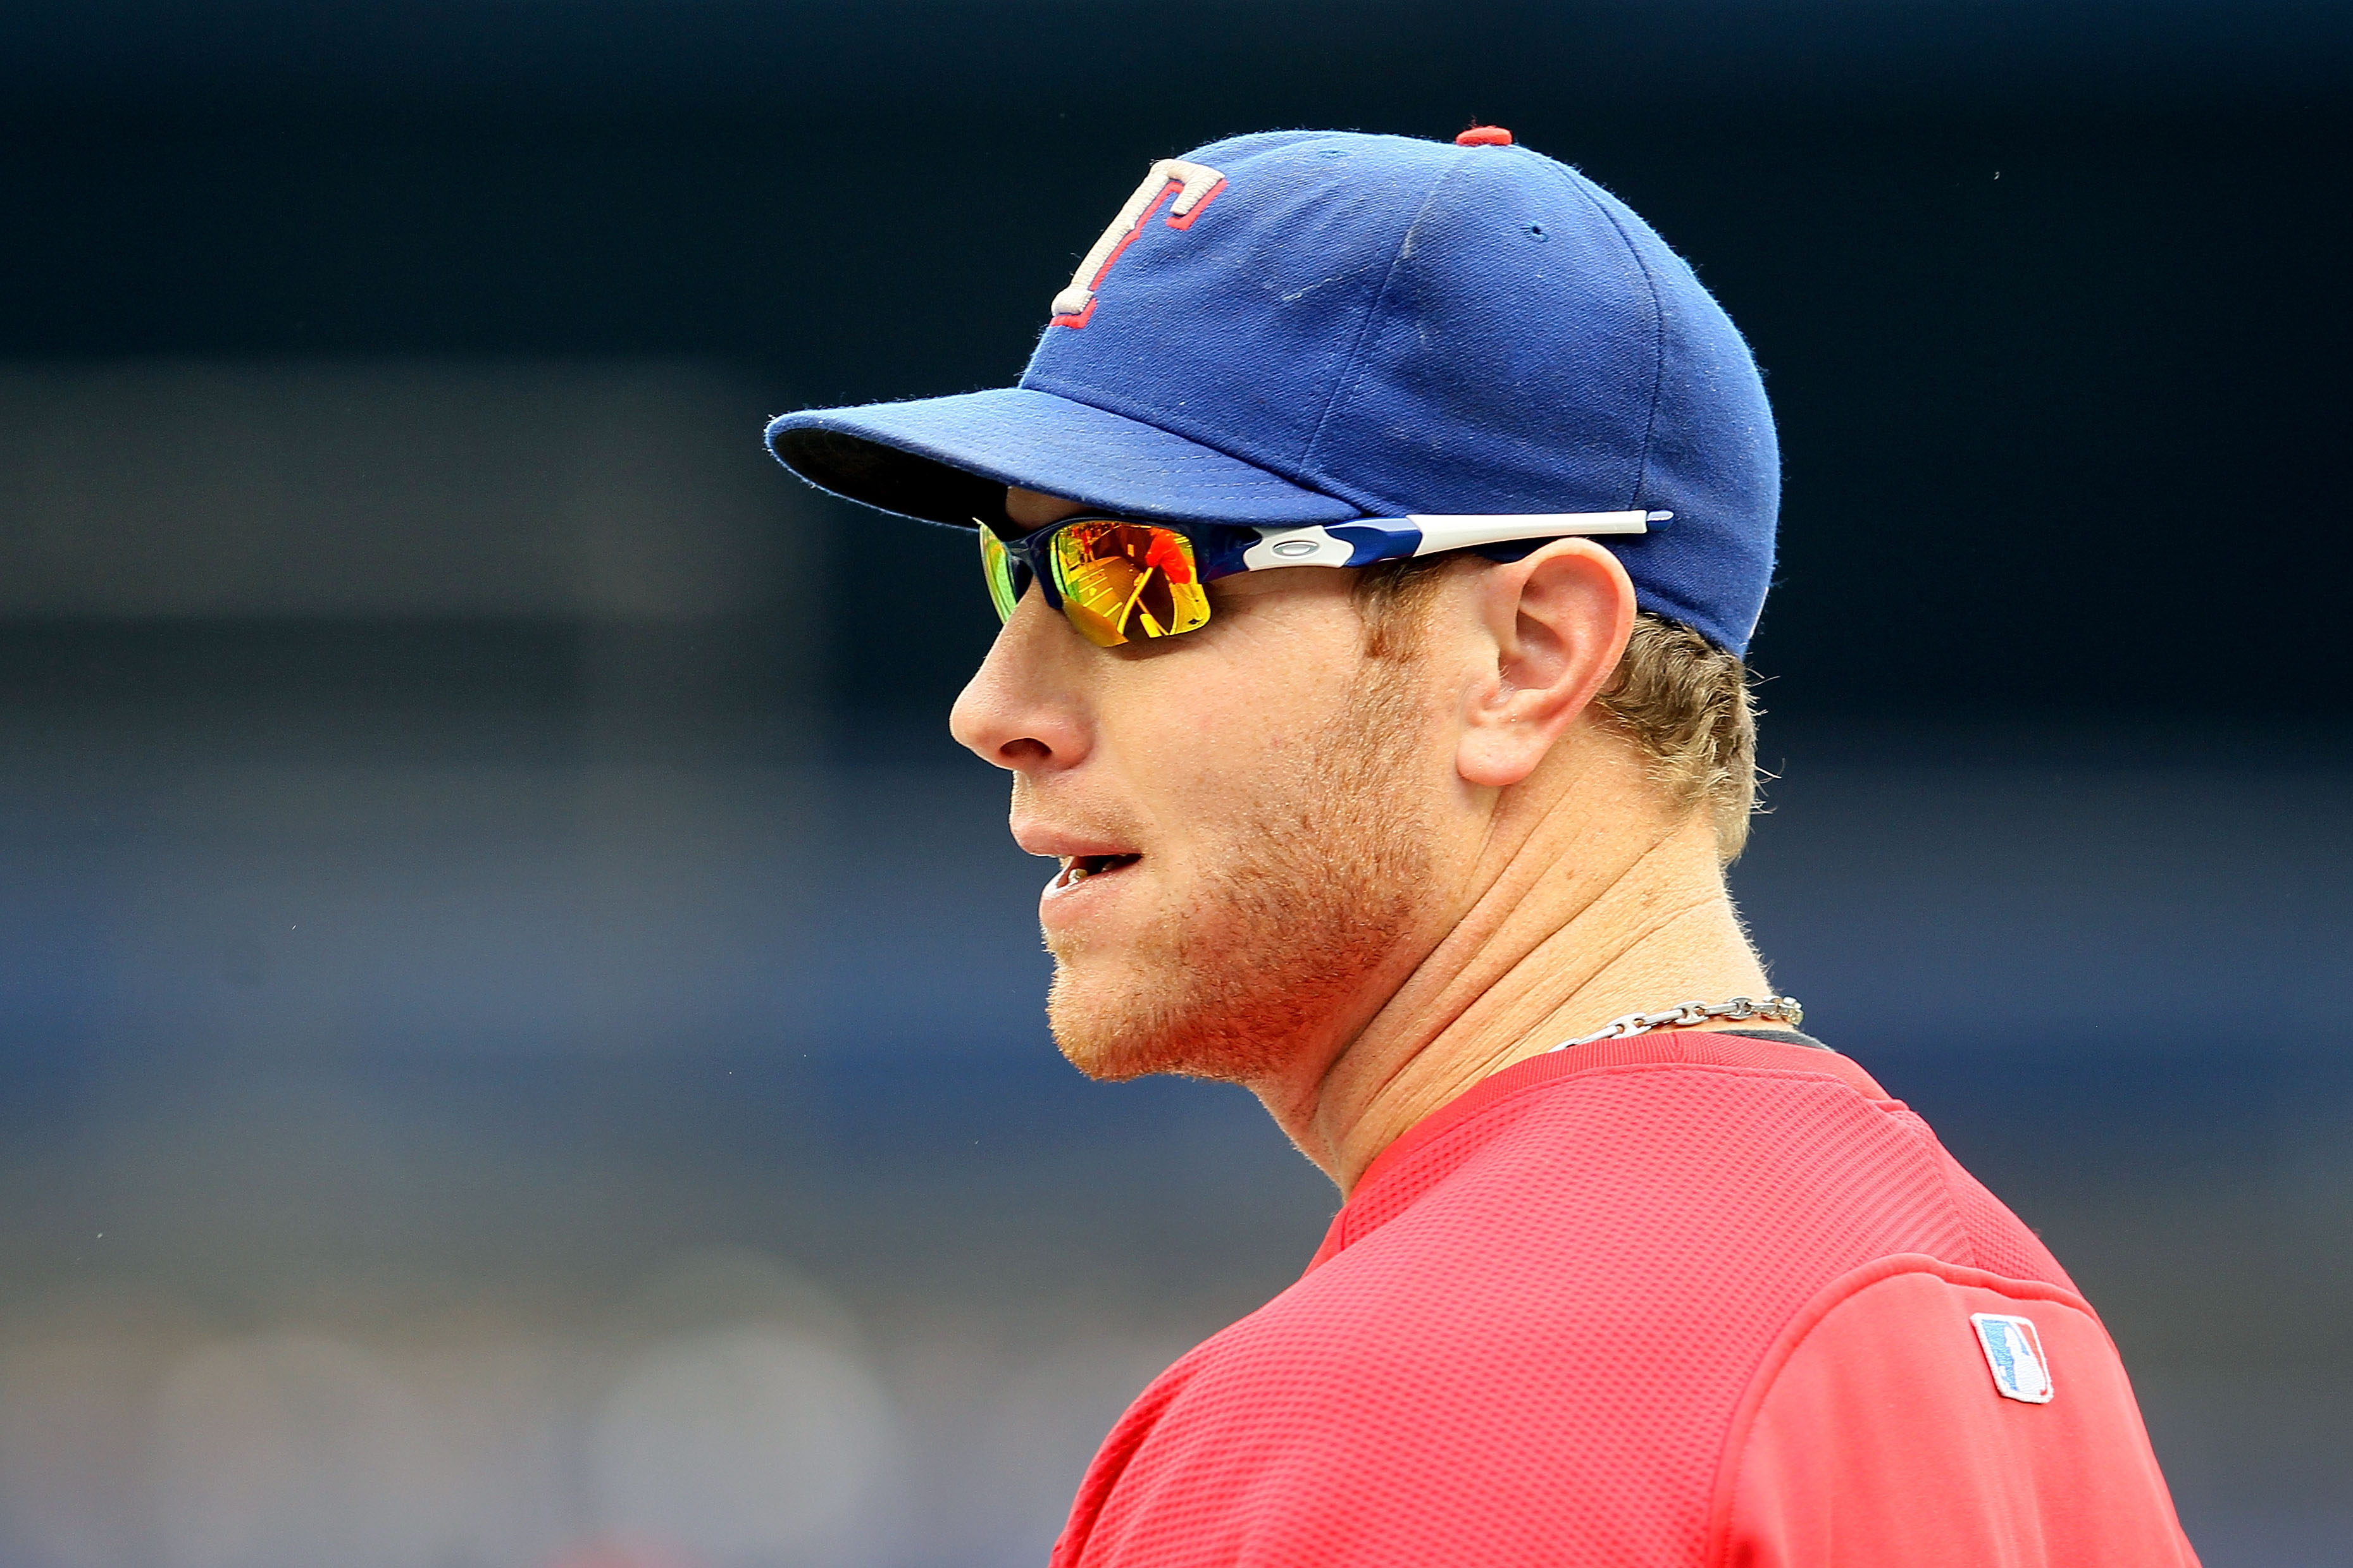 NEW YORK - OCTOBER 20:  Josh Hamilton #32 of the Texas Rangers looks on prior to playing in Game Five of the ALCS during the 2010 MLB Playoffs at Yankee Stadium on October 20, 2010 in the Bronx borough of New York City.  (Photo by Jim McIsaac/Getty Images